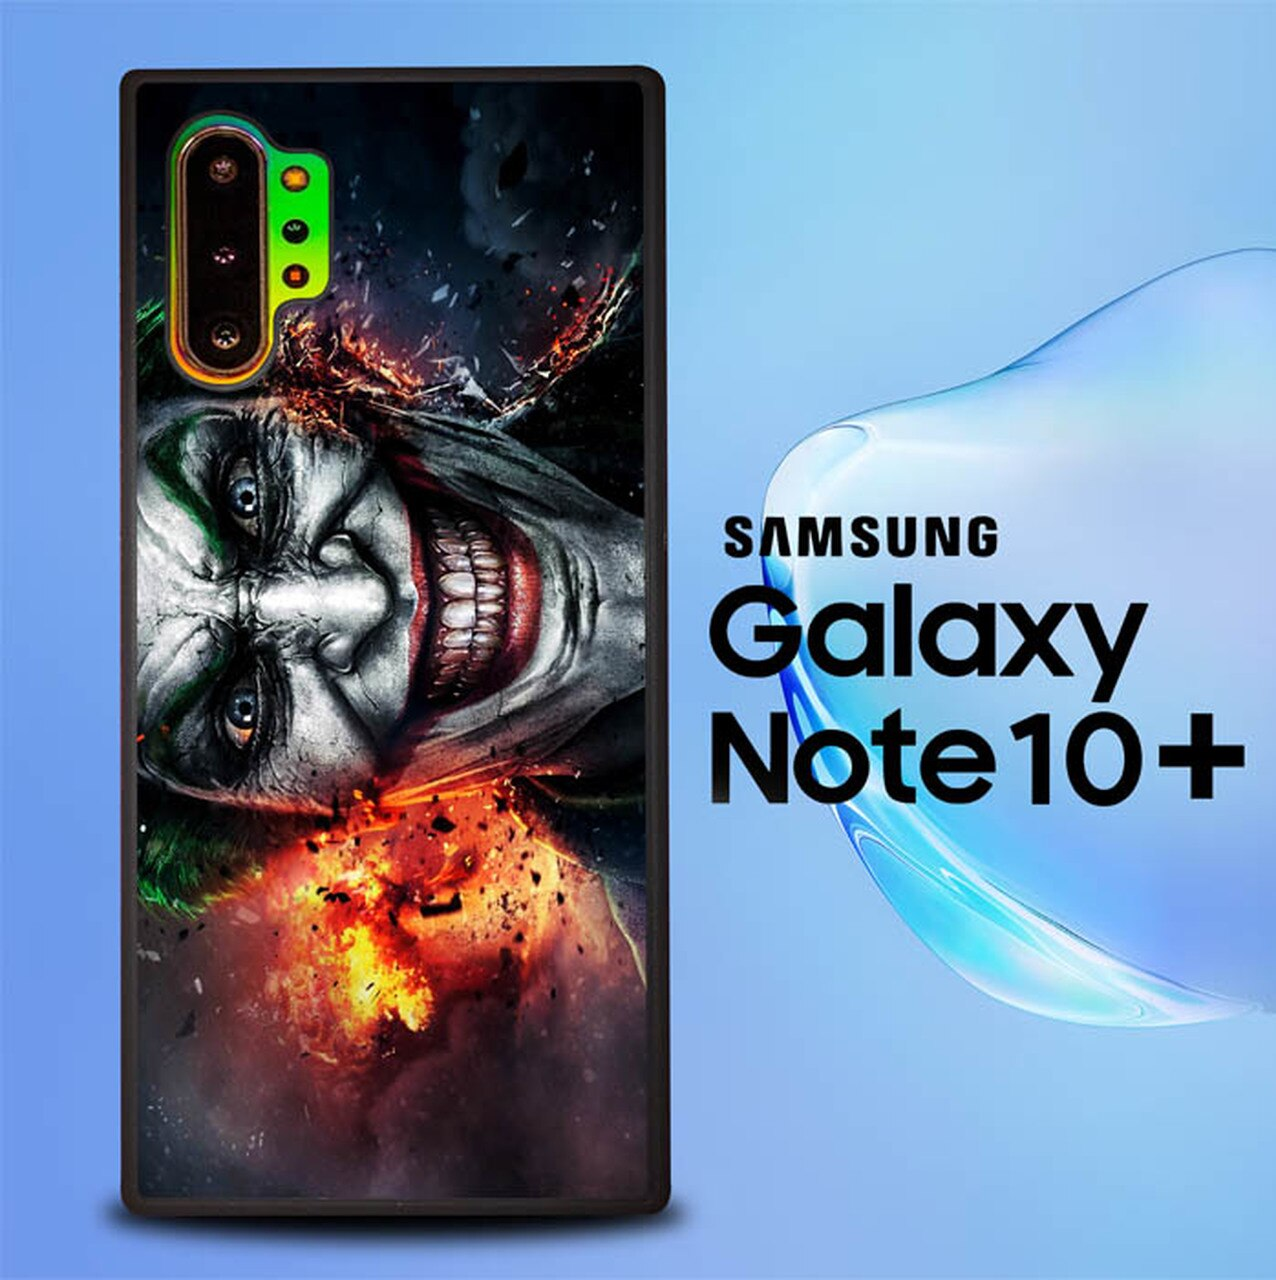 Samsung Note 10 Star Wars 1276x1280 Wallpaper Teahub Io